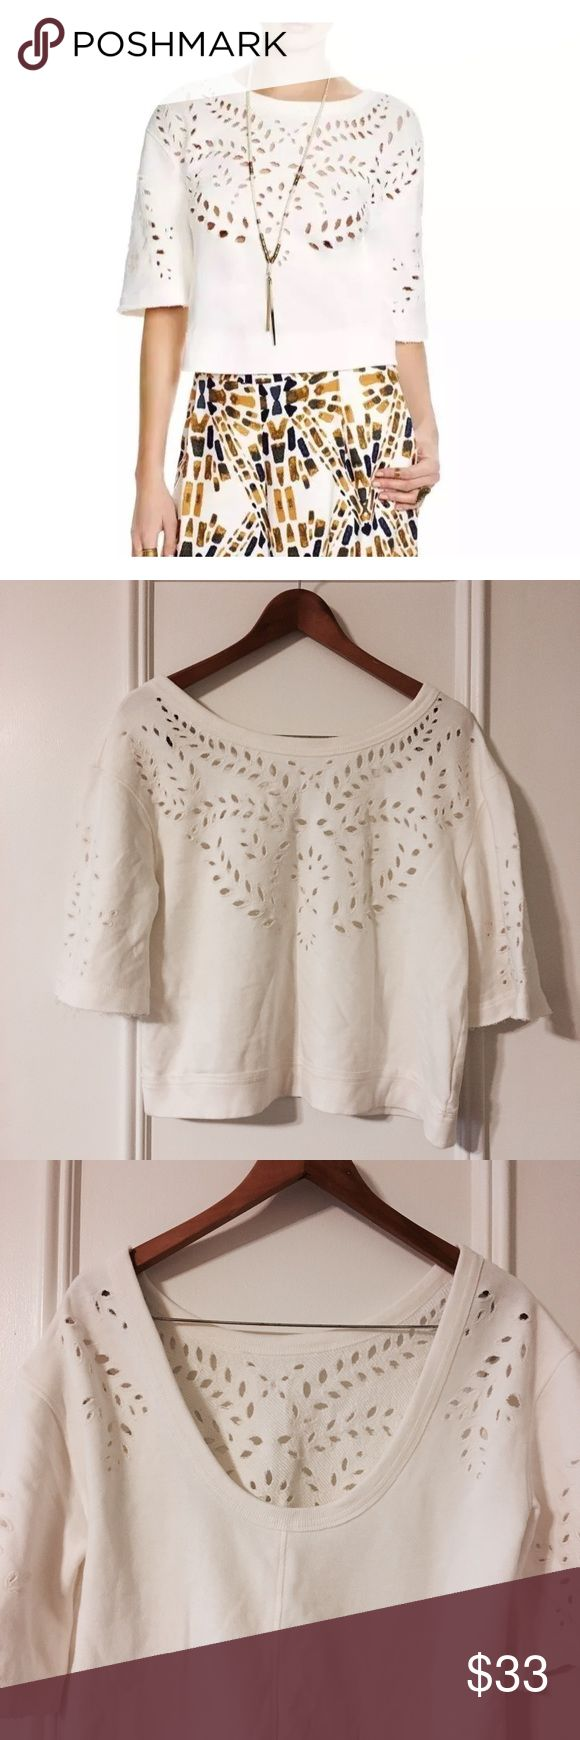 Free people eyelet cropped top Free people crumpet top. New with tag. Suggested retail price: $108 ivory color. Sweatshirt material, cropped top with Scoop back. Elbow length sleeves. Very cute but Scoop in the back was too deep for me. Not my style. Free People Tops Crop Tops